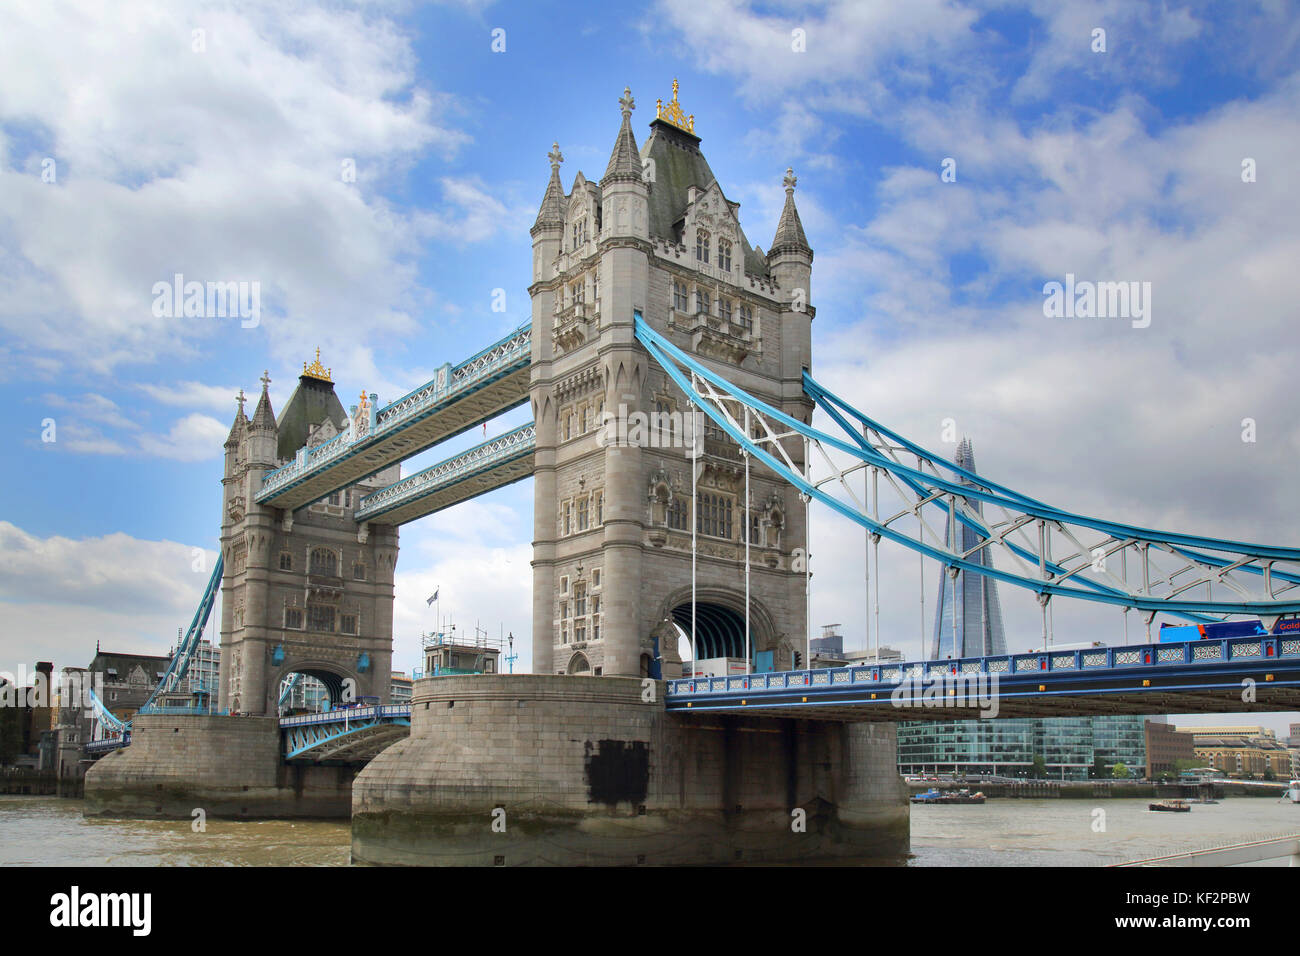 the historic tower bridge across the river thames in london - Stock Image